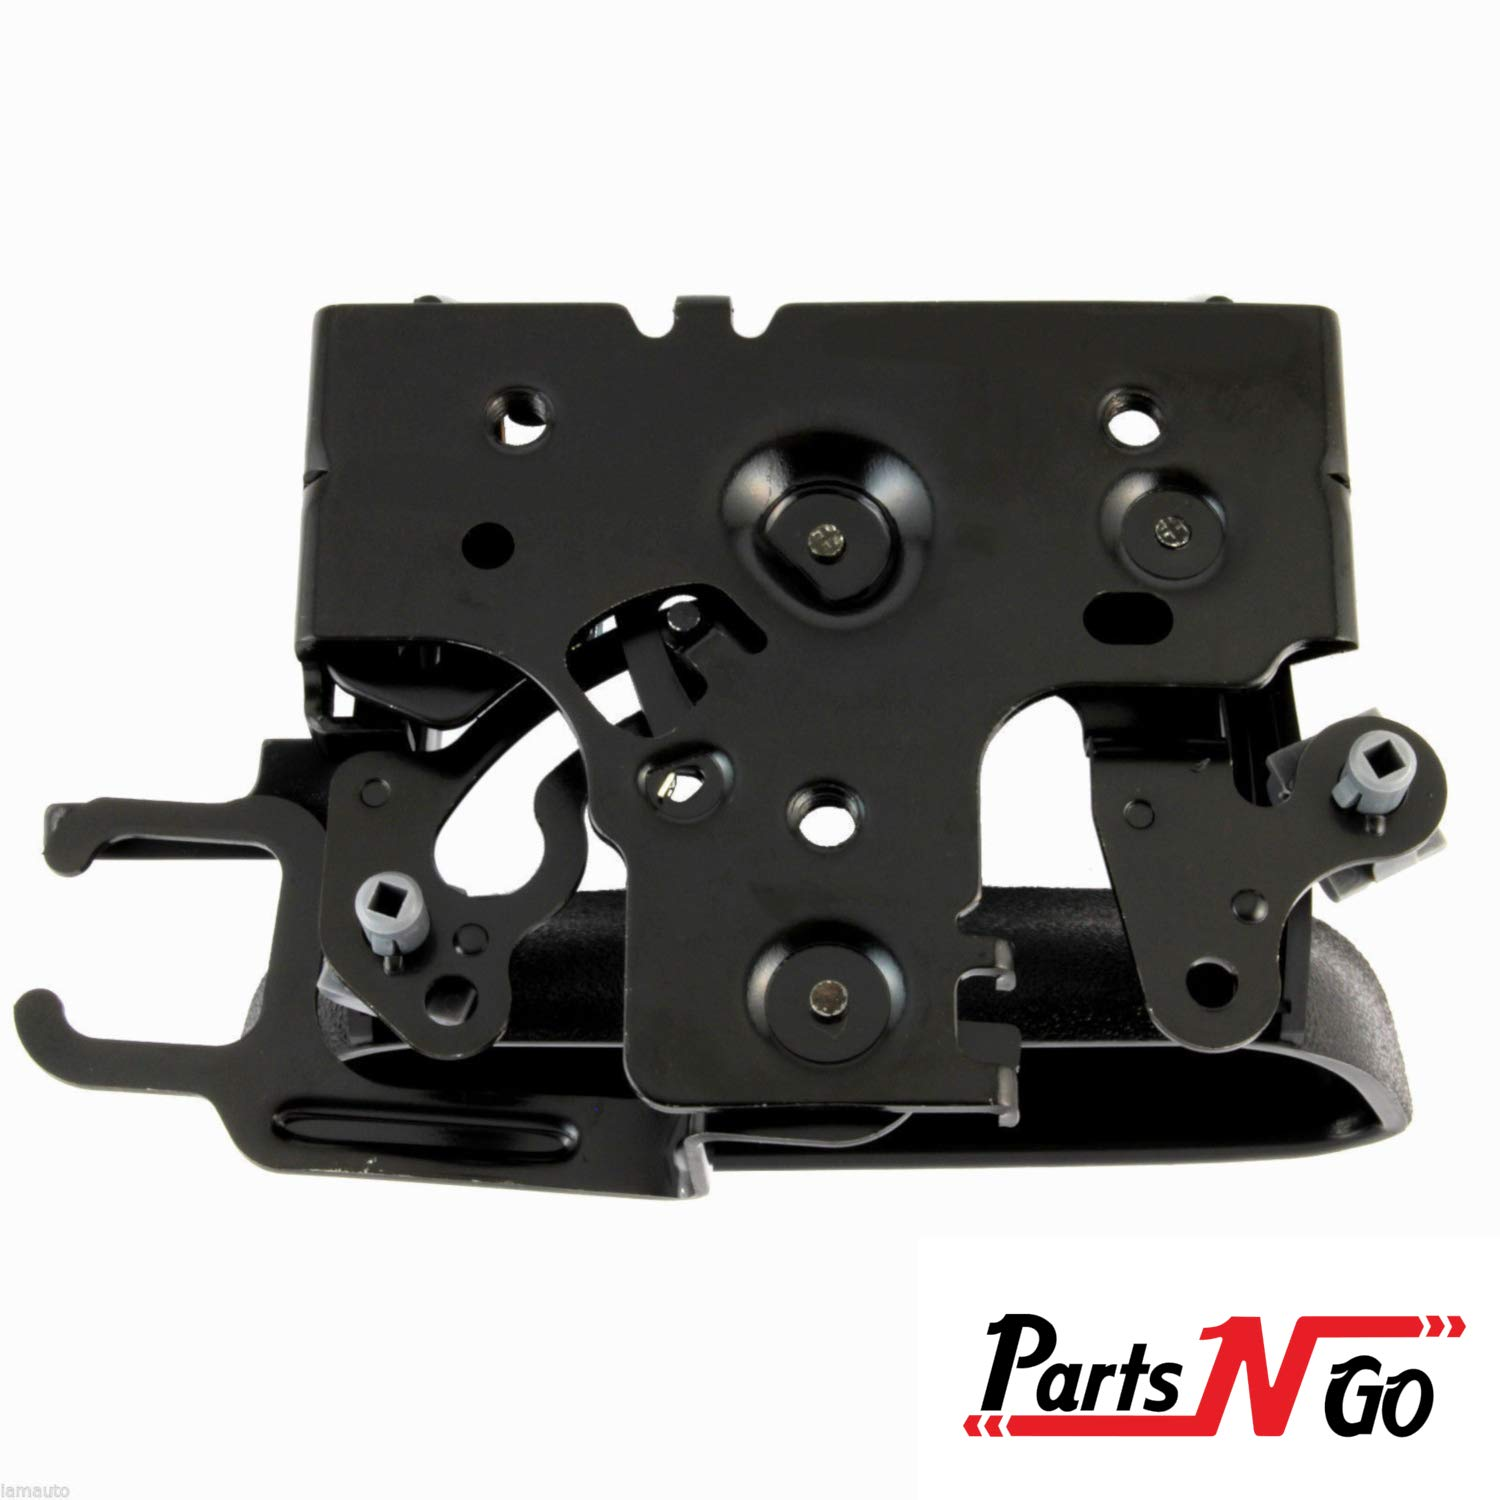 Speedometer Drive Gear Box Motorcycle Replacement Accessories Fit for Honda GL1200 Aramox Drive Gear